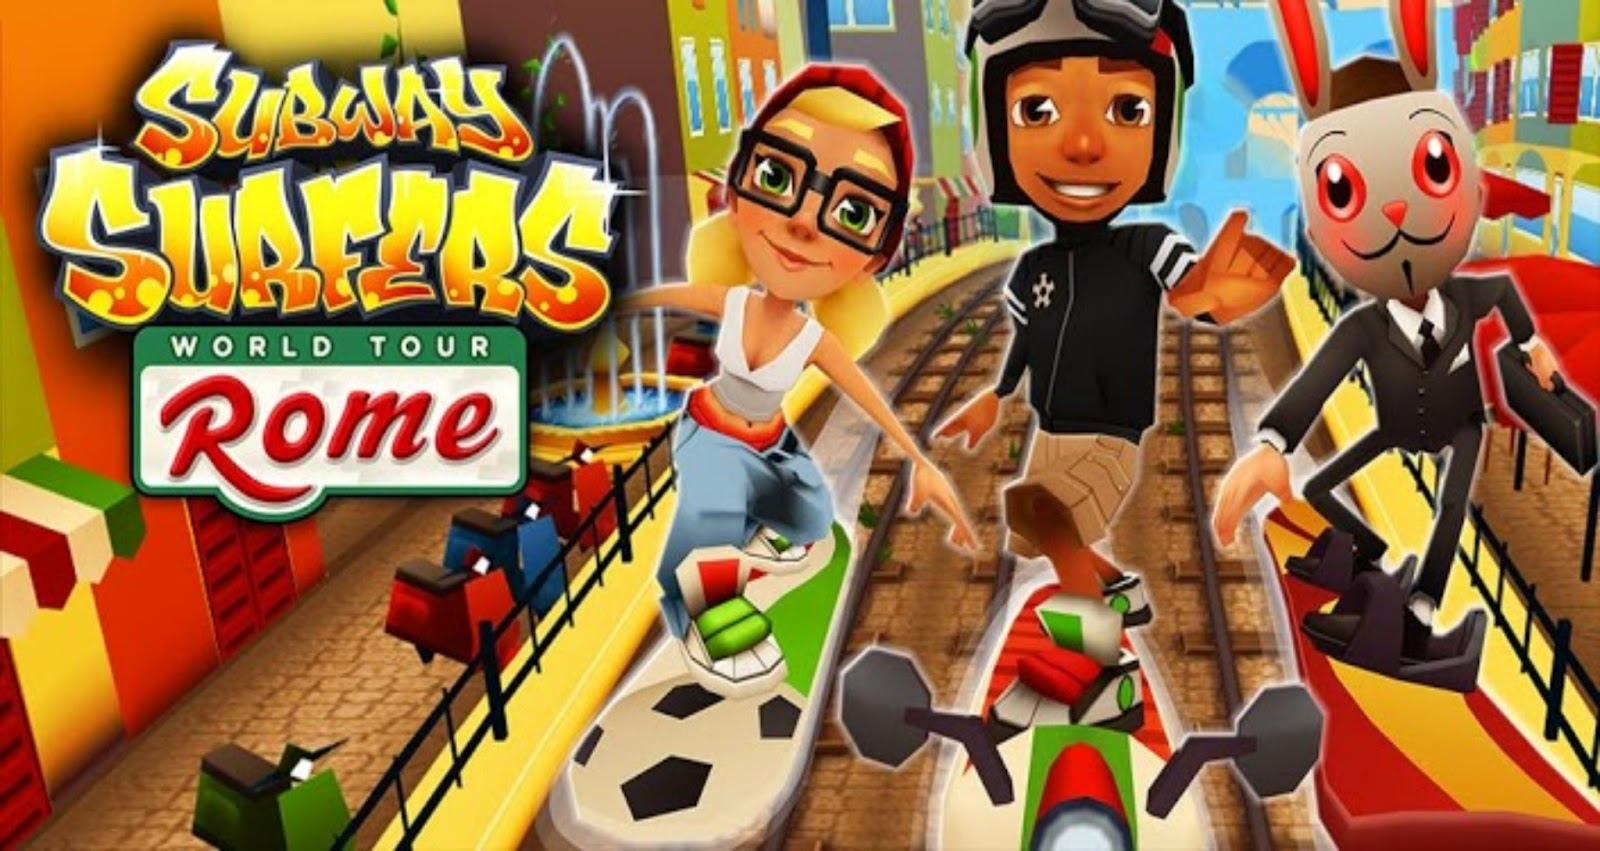 Free Download Subway Surfers v1.8.0 Apk for Android